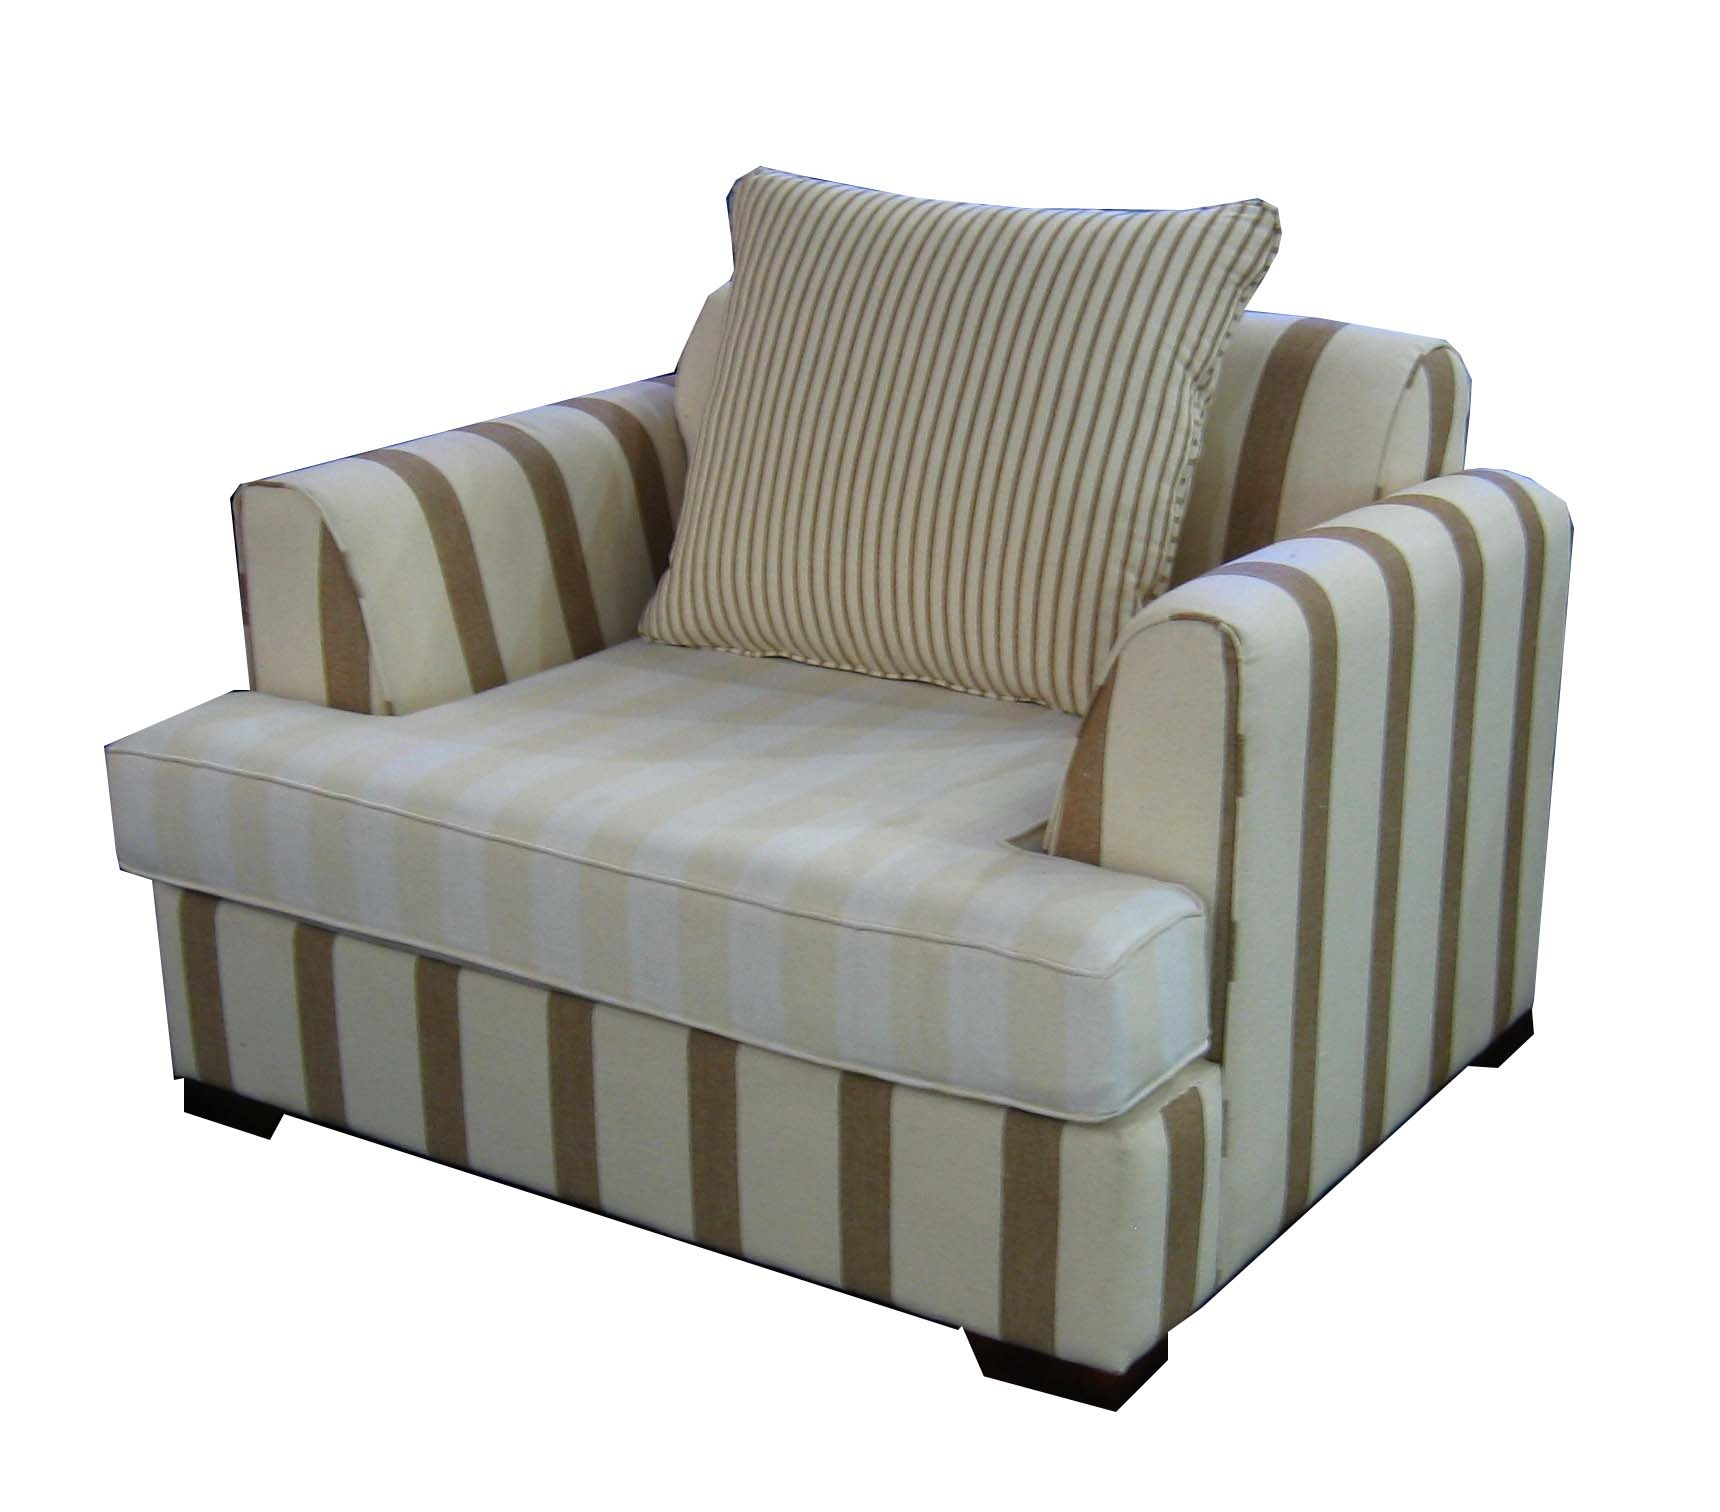 Sofa Chair Sofa For One Person Couch And Sofa Ideas Interior Design